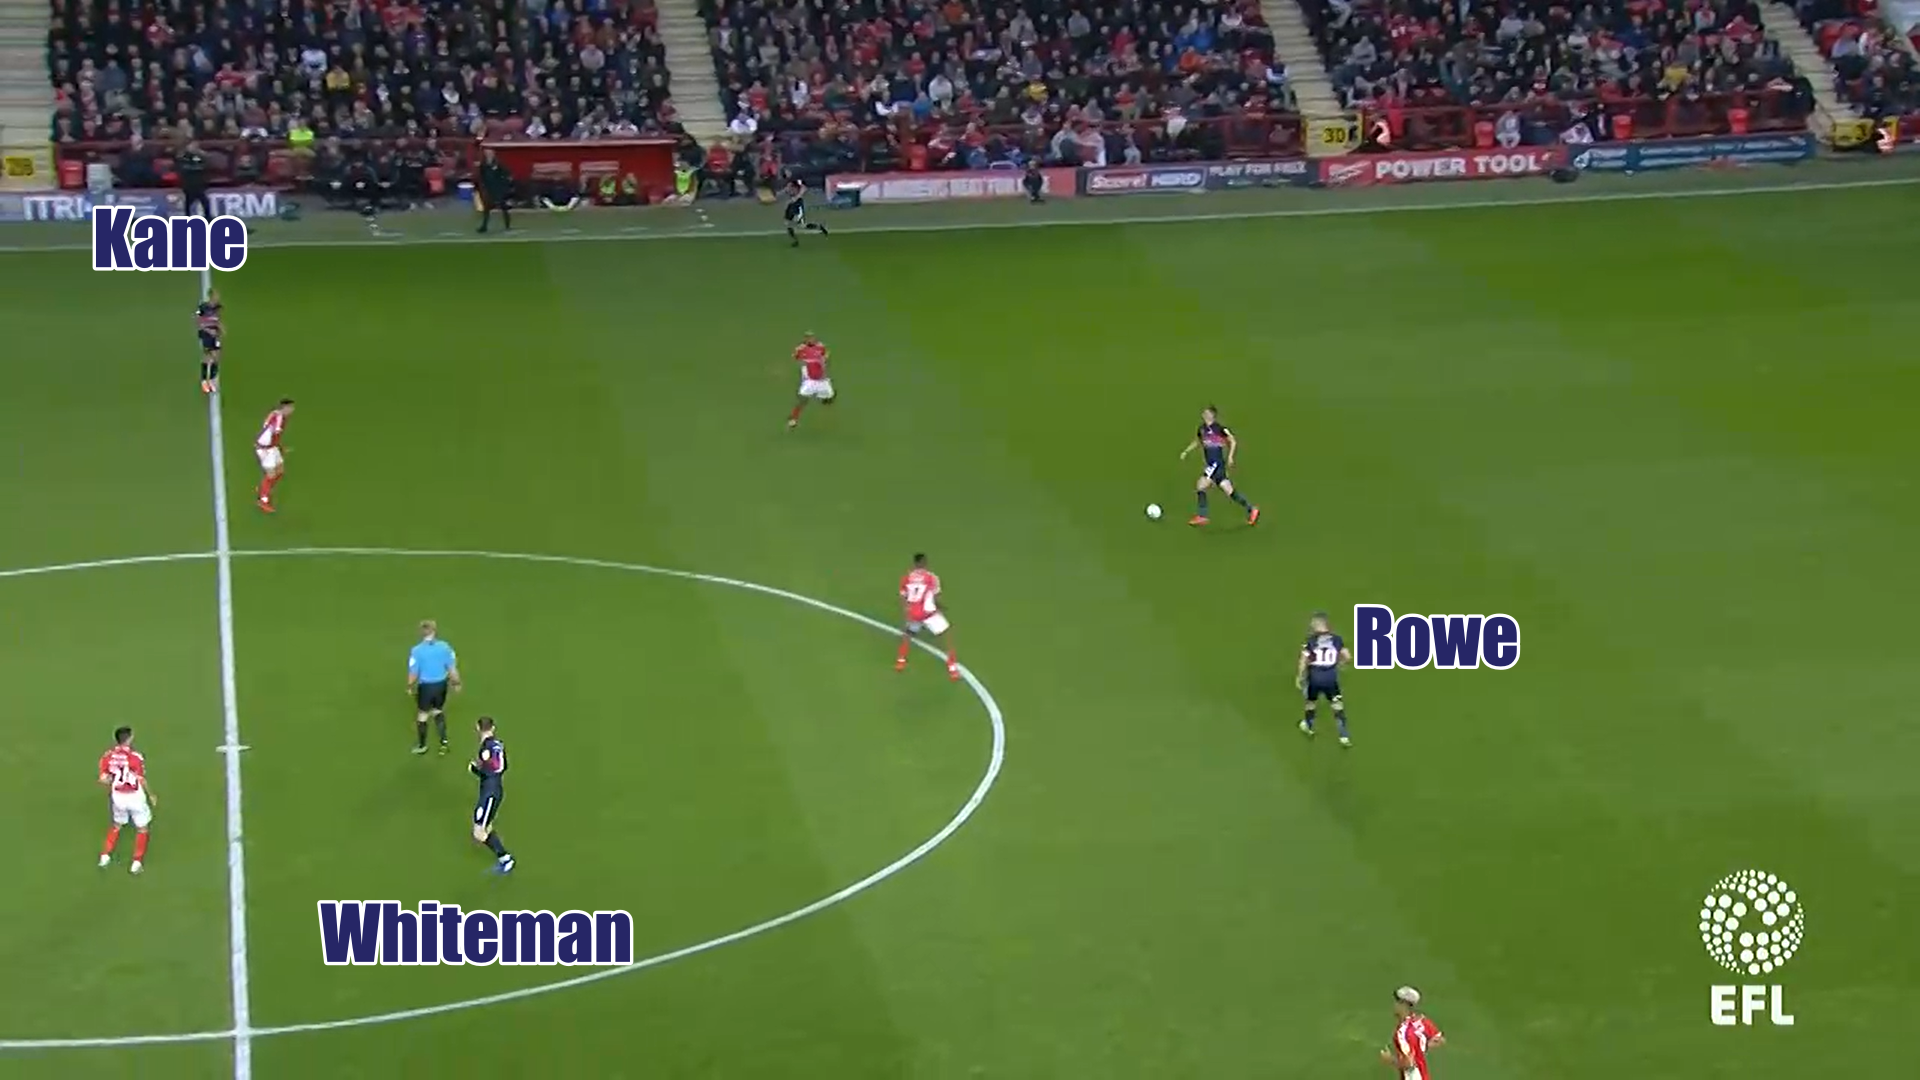 League One Play-Off 2018/19 Tactical Analysis: Charlton Athletic vs Doncaster Rovers